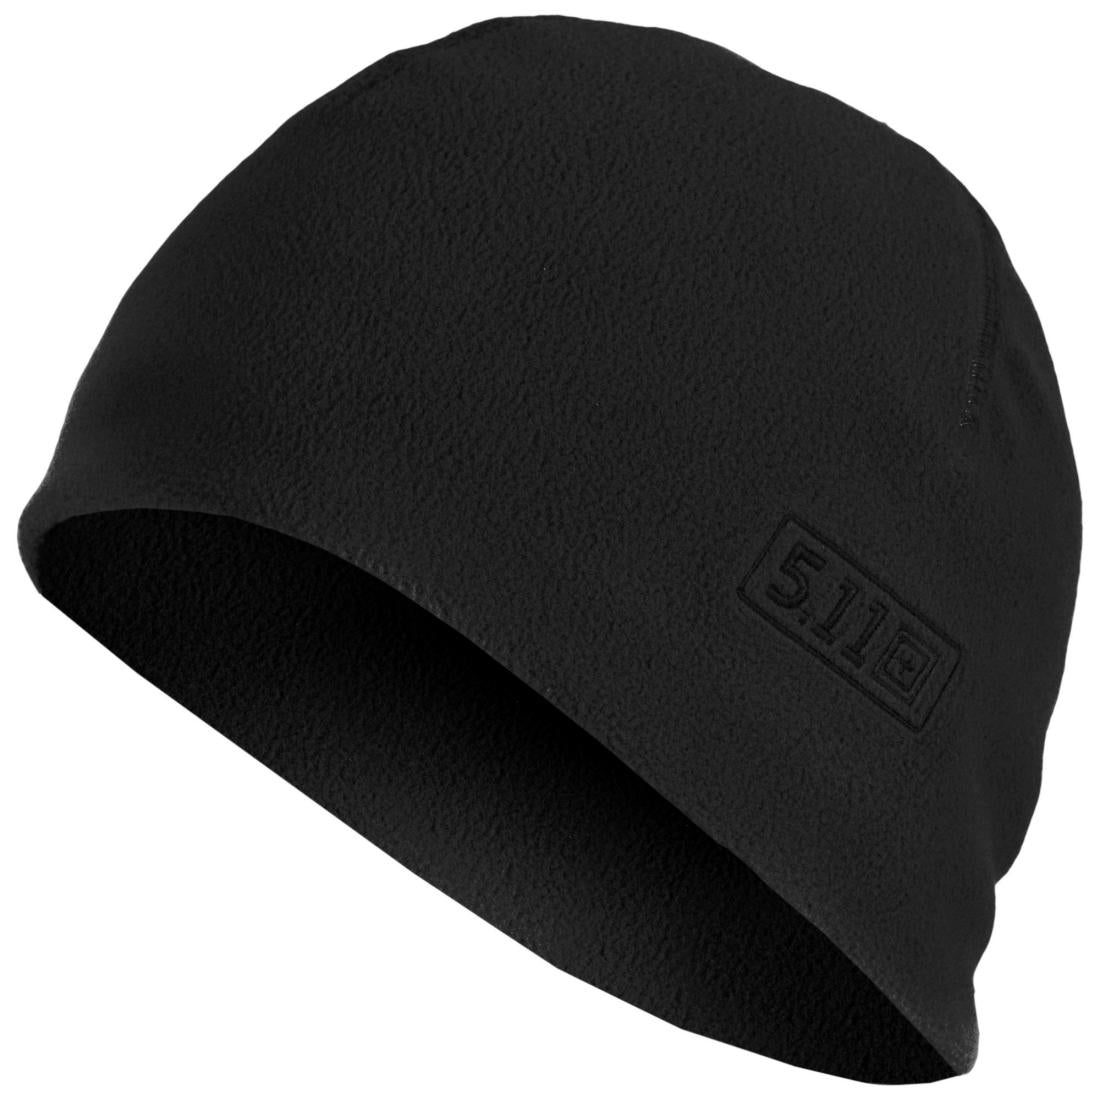 5.11 Tactical 89250 Men Watch Cap Black - S/M